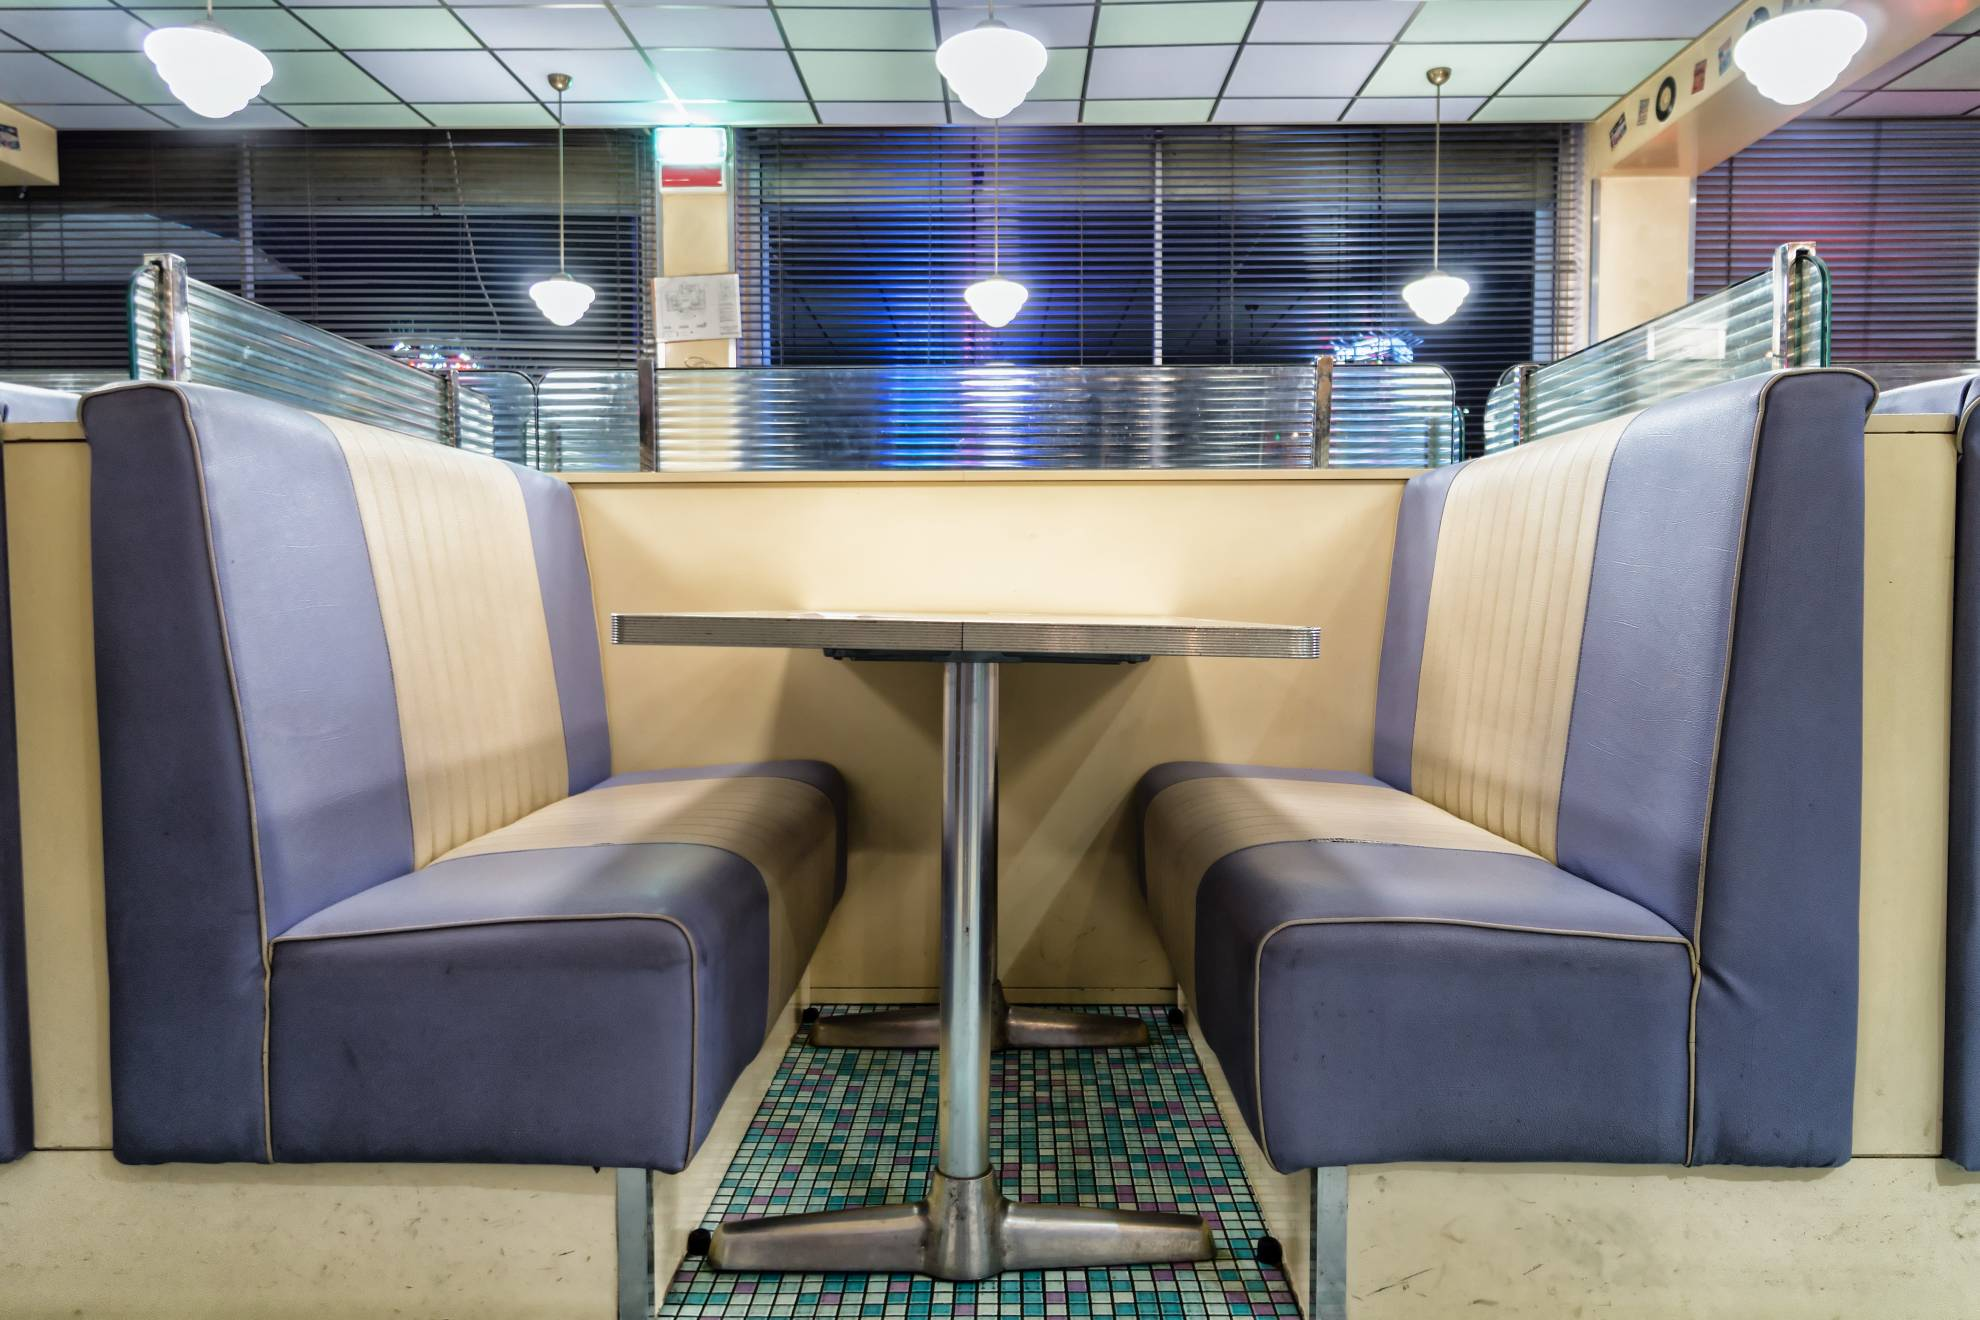 Diner Booth For Sale American City Pictures Images 100